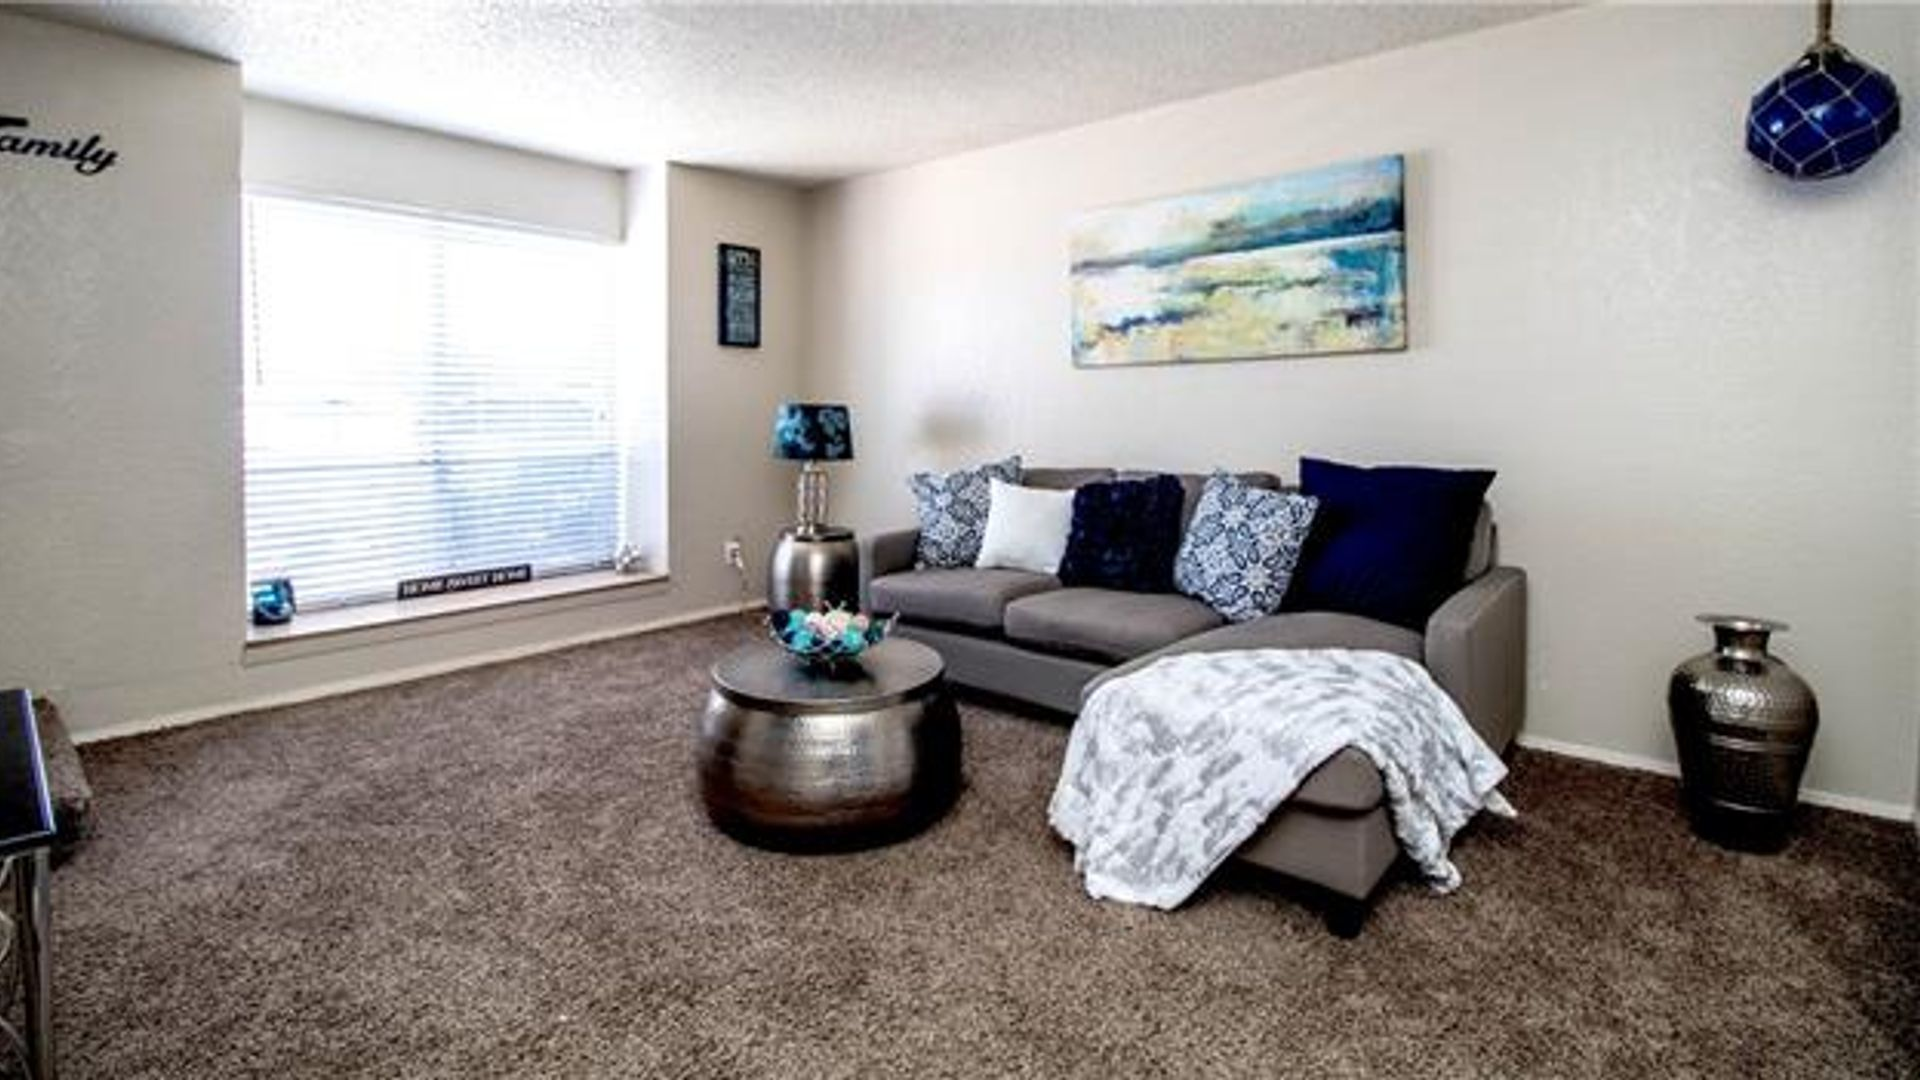 1 bedroom apartment at 5401 50th street lubbock tx 79414